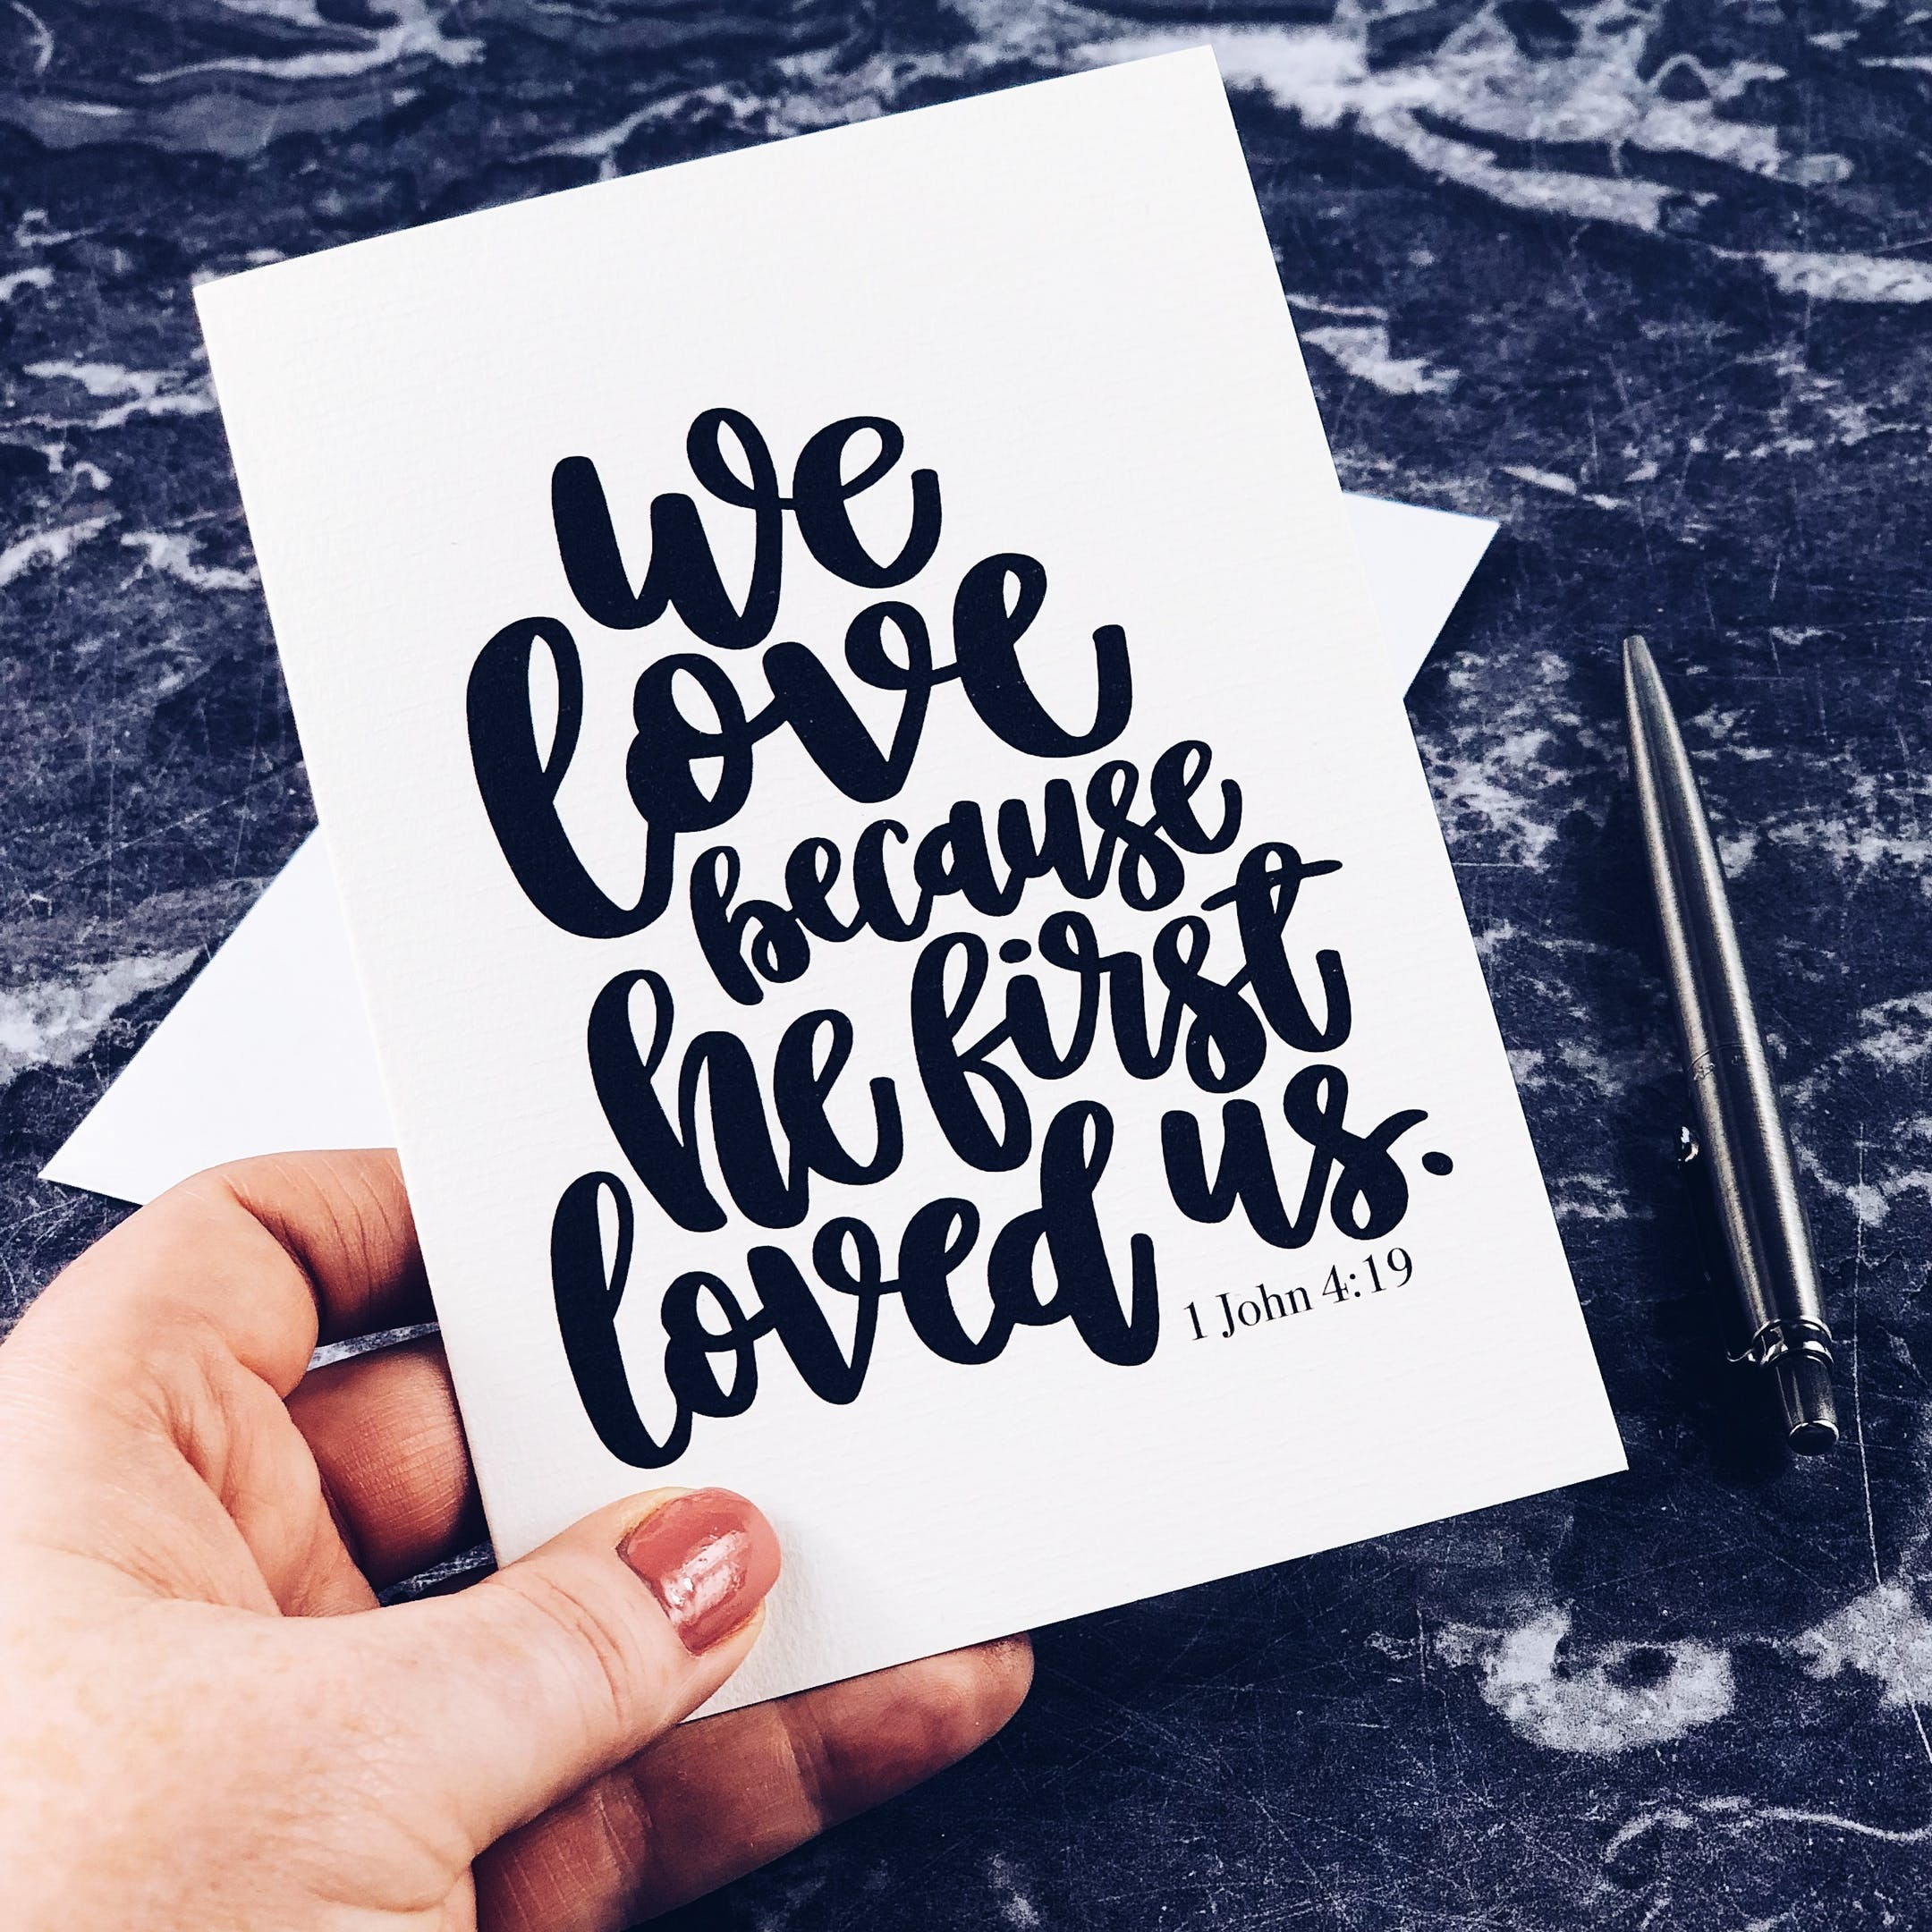 1 John 4:19 - We Love Because - Izzy and Pop Card